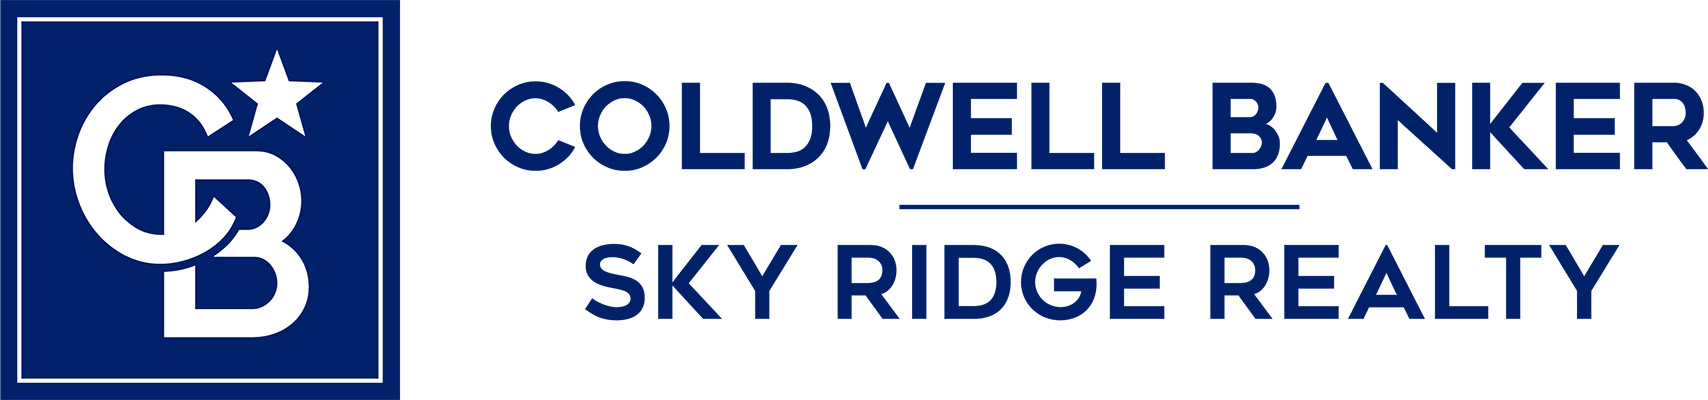 Jeff Teel - Coldwell Banker Sky Ridge Realty